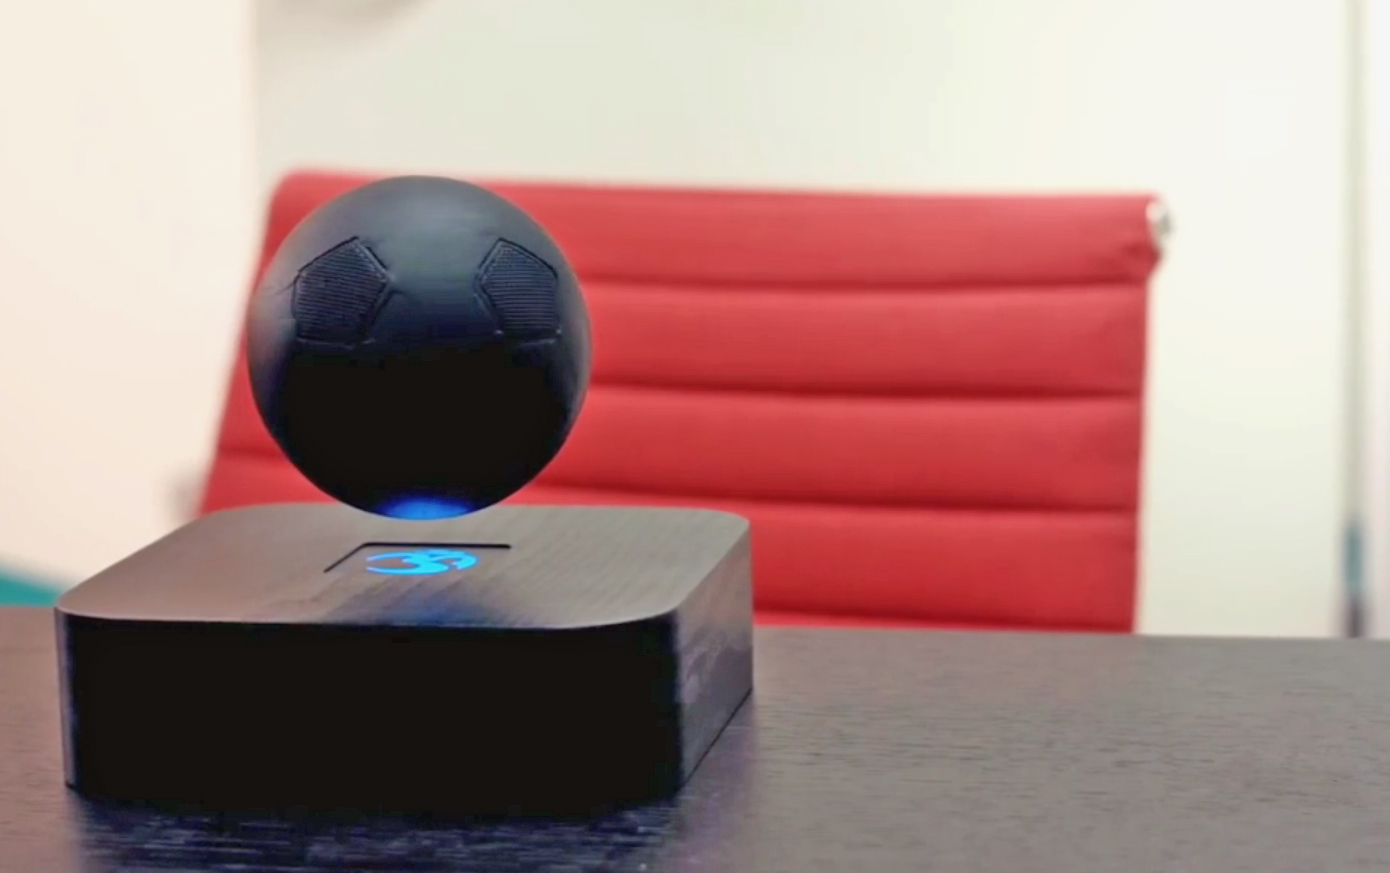 Om/One - the floating Bluetooth speaker you never knew you needed